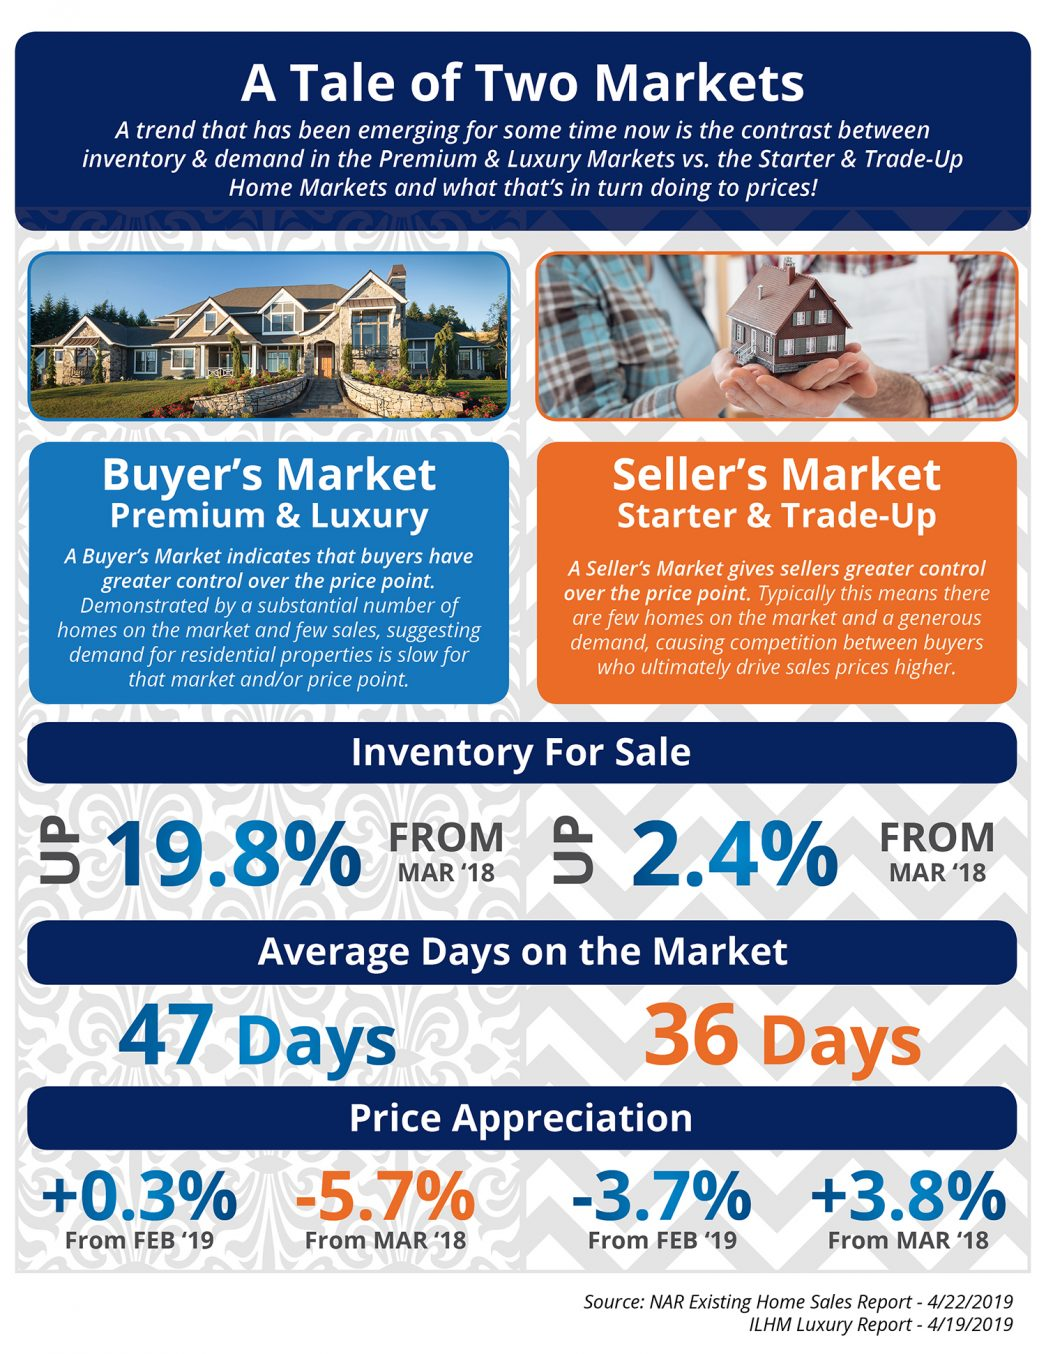 Utah Realty Presents A Tale of Two Markets